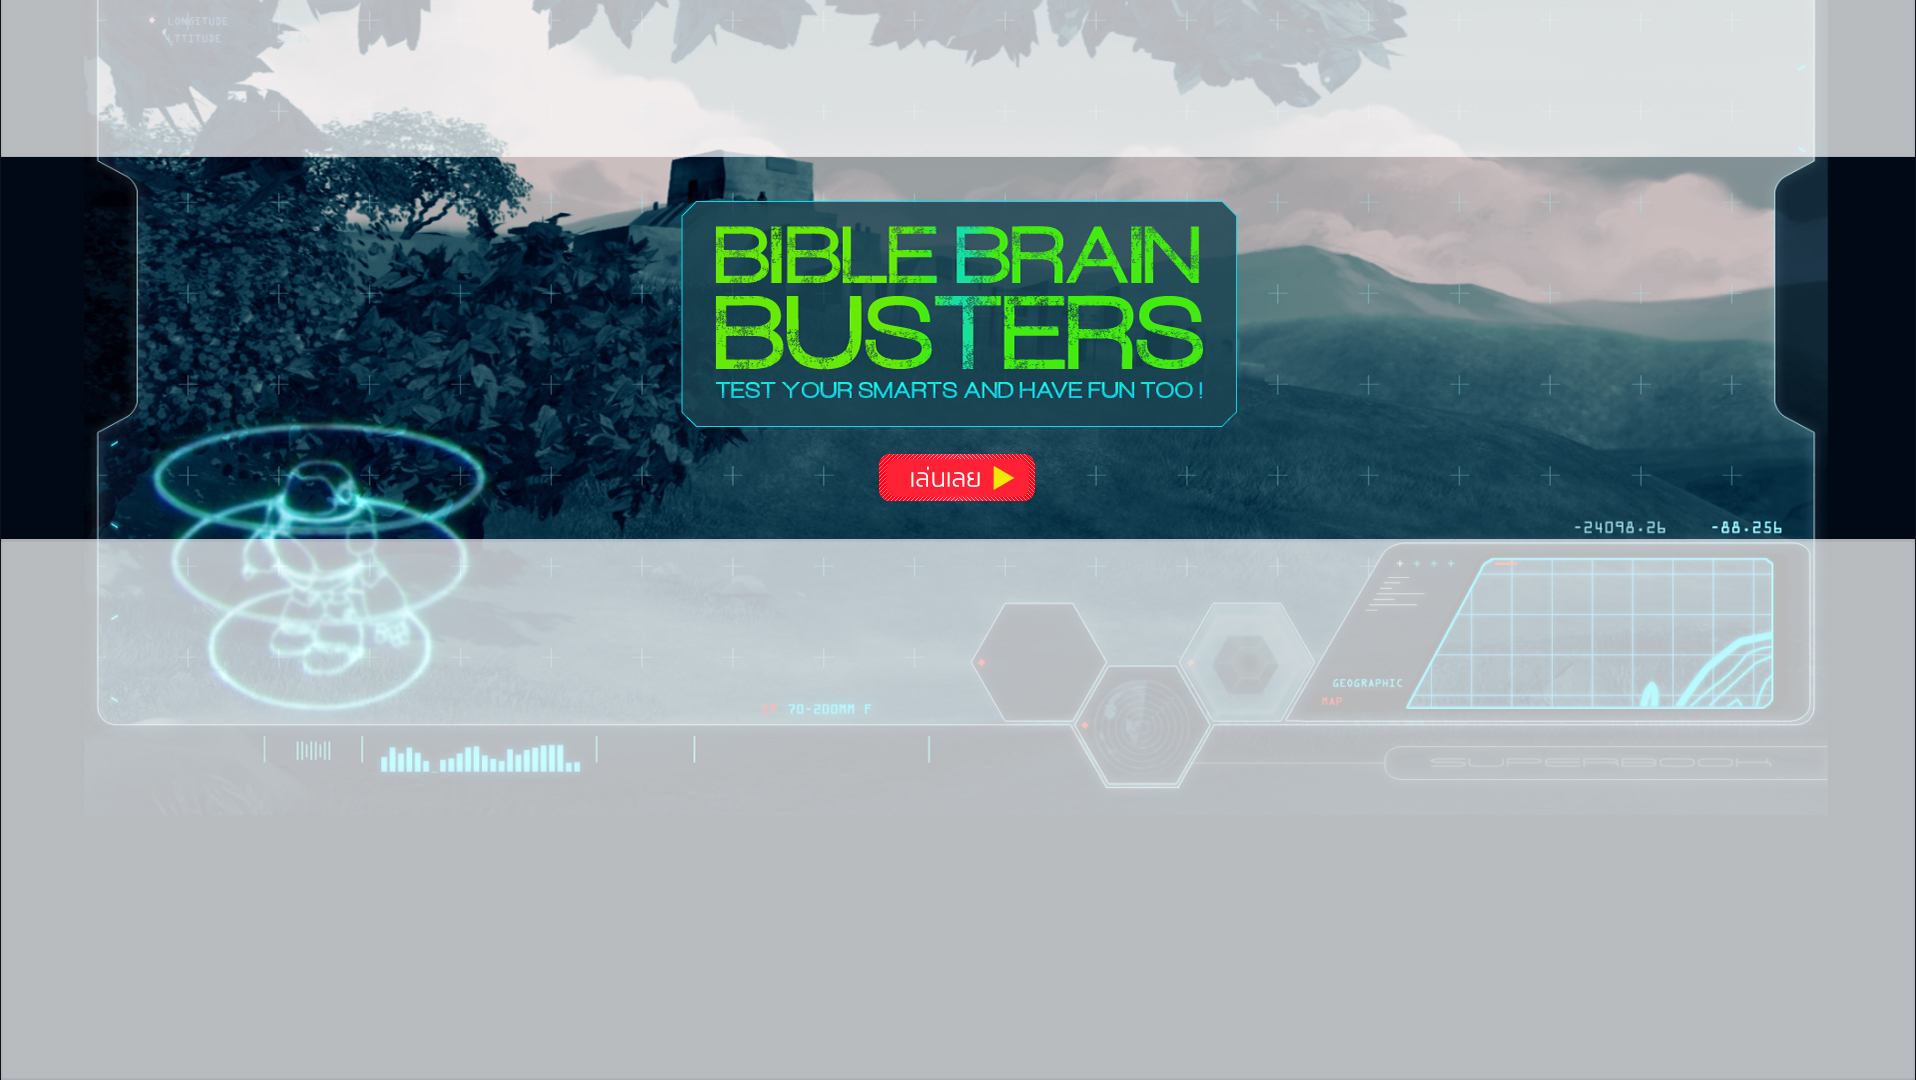 <h2>Bible Brain Busters</h2>